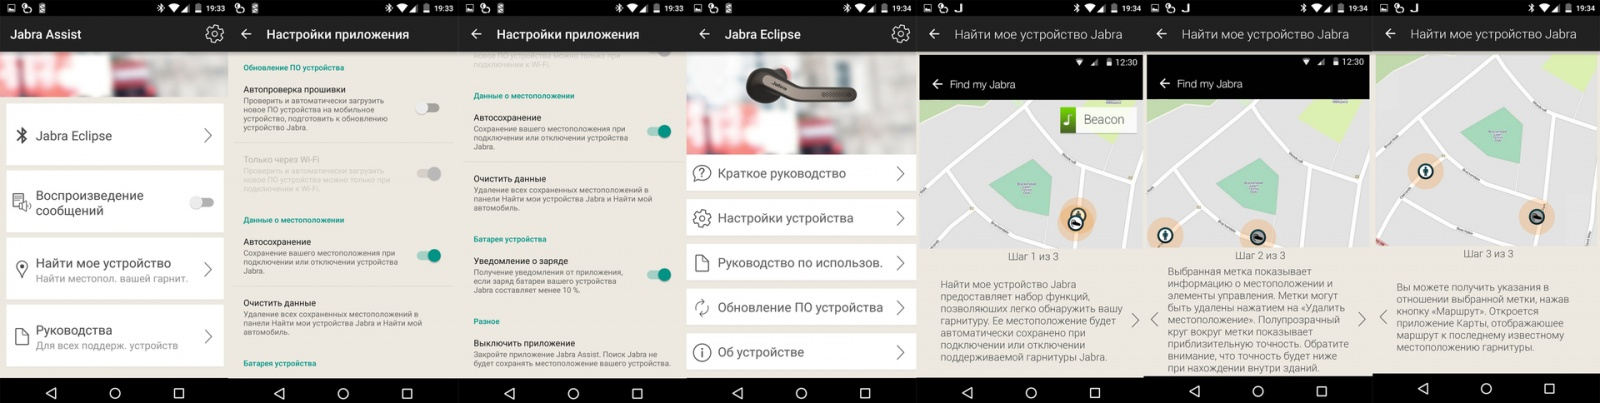 Гарнитура Jabra Eclipse: небюджетный футуризм - 9